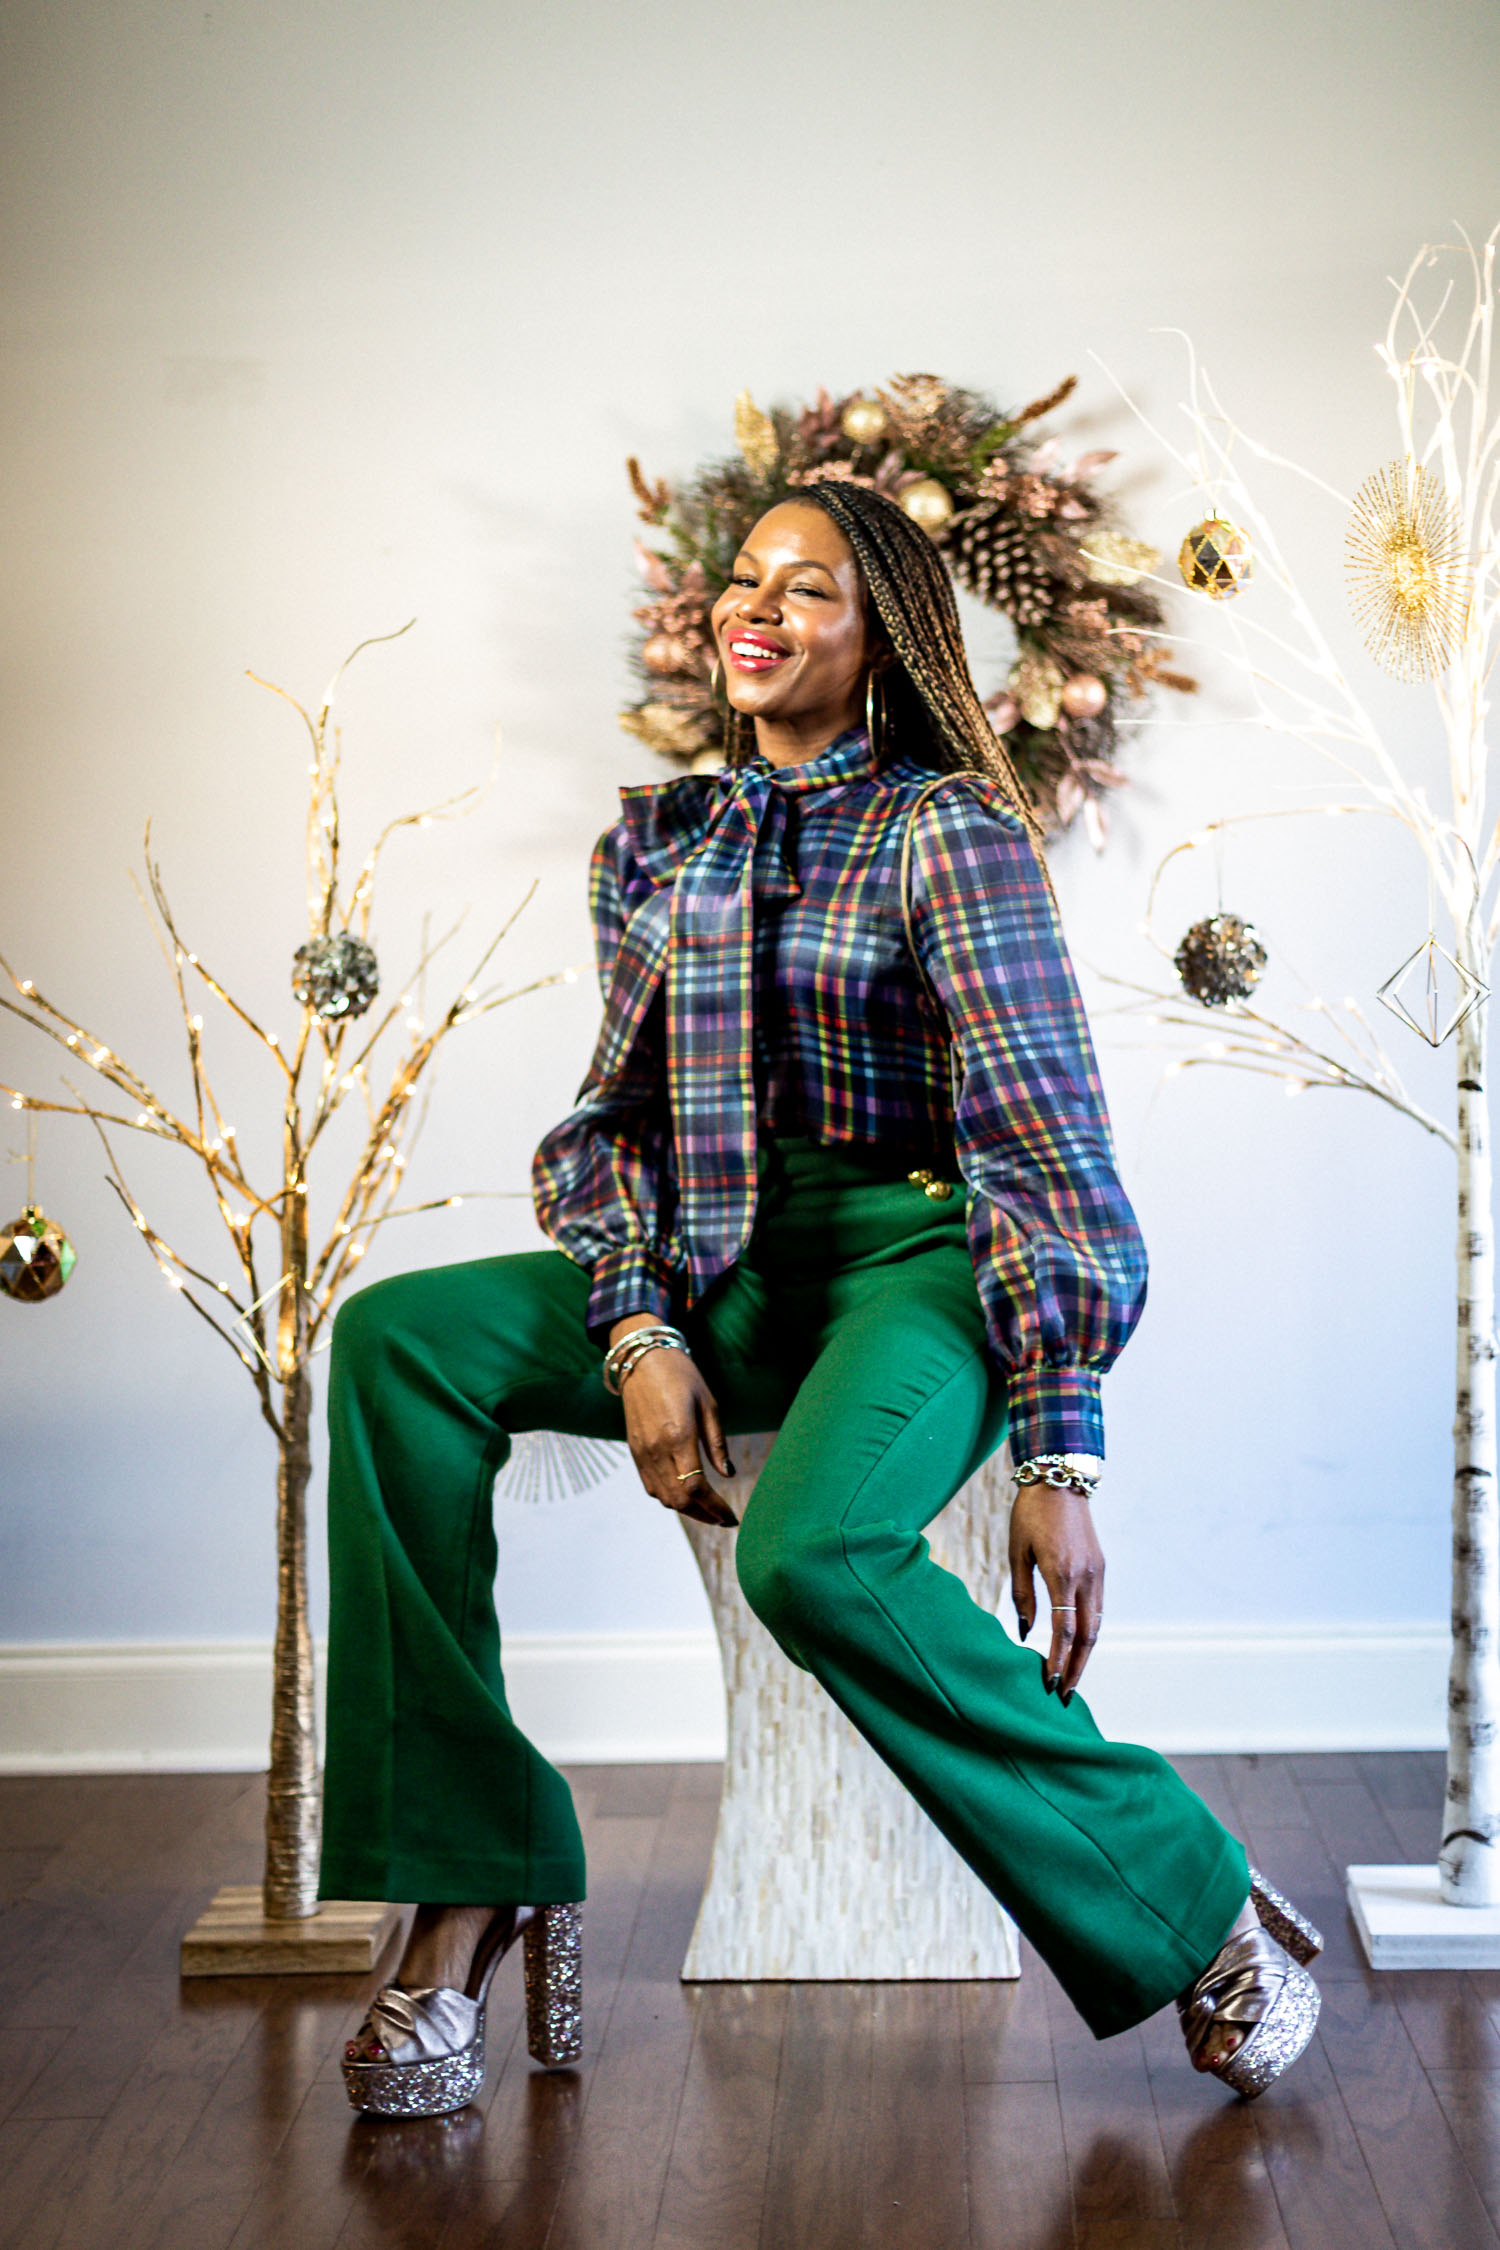 top atlanta blogger creates the perfect gift guide for gifts for your bestie, best gifts, to gifts for mom, best gifts for your best friend, gifts for your bestie, holiday gifts